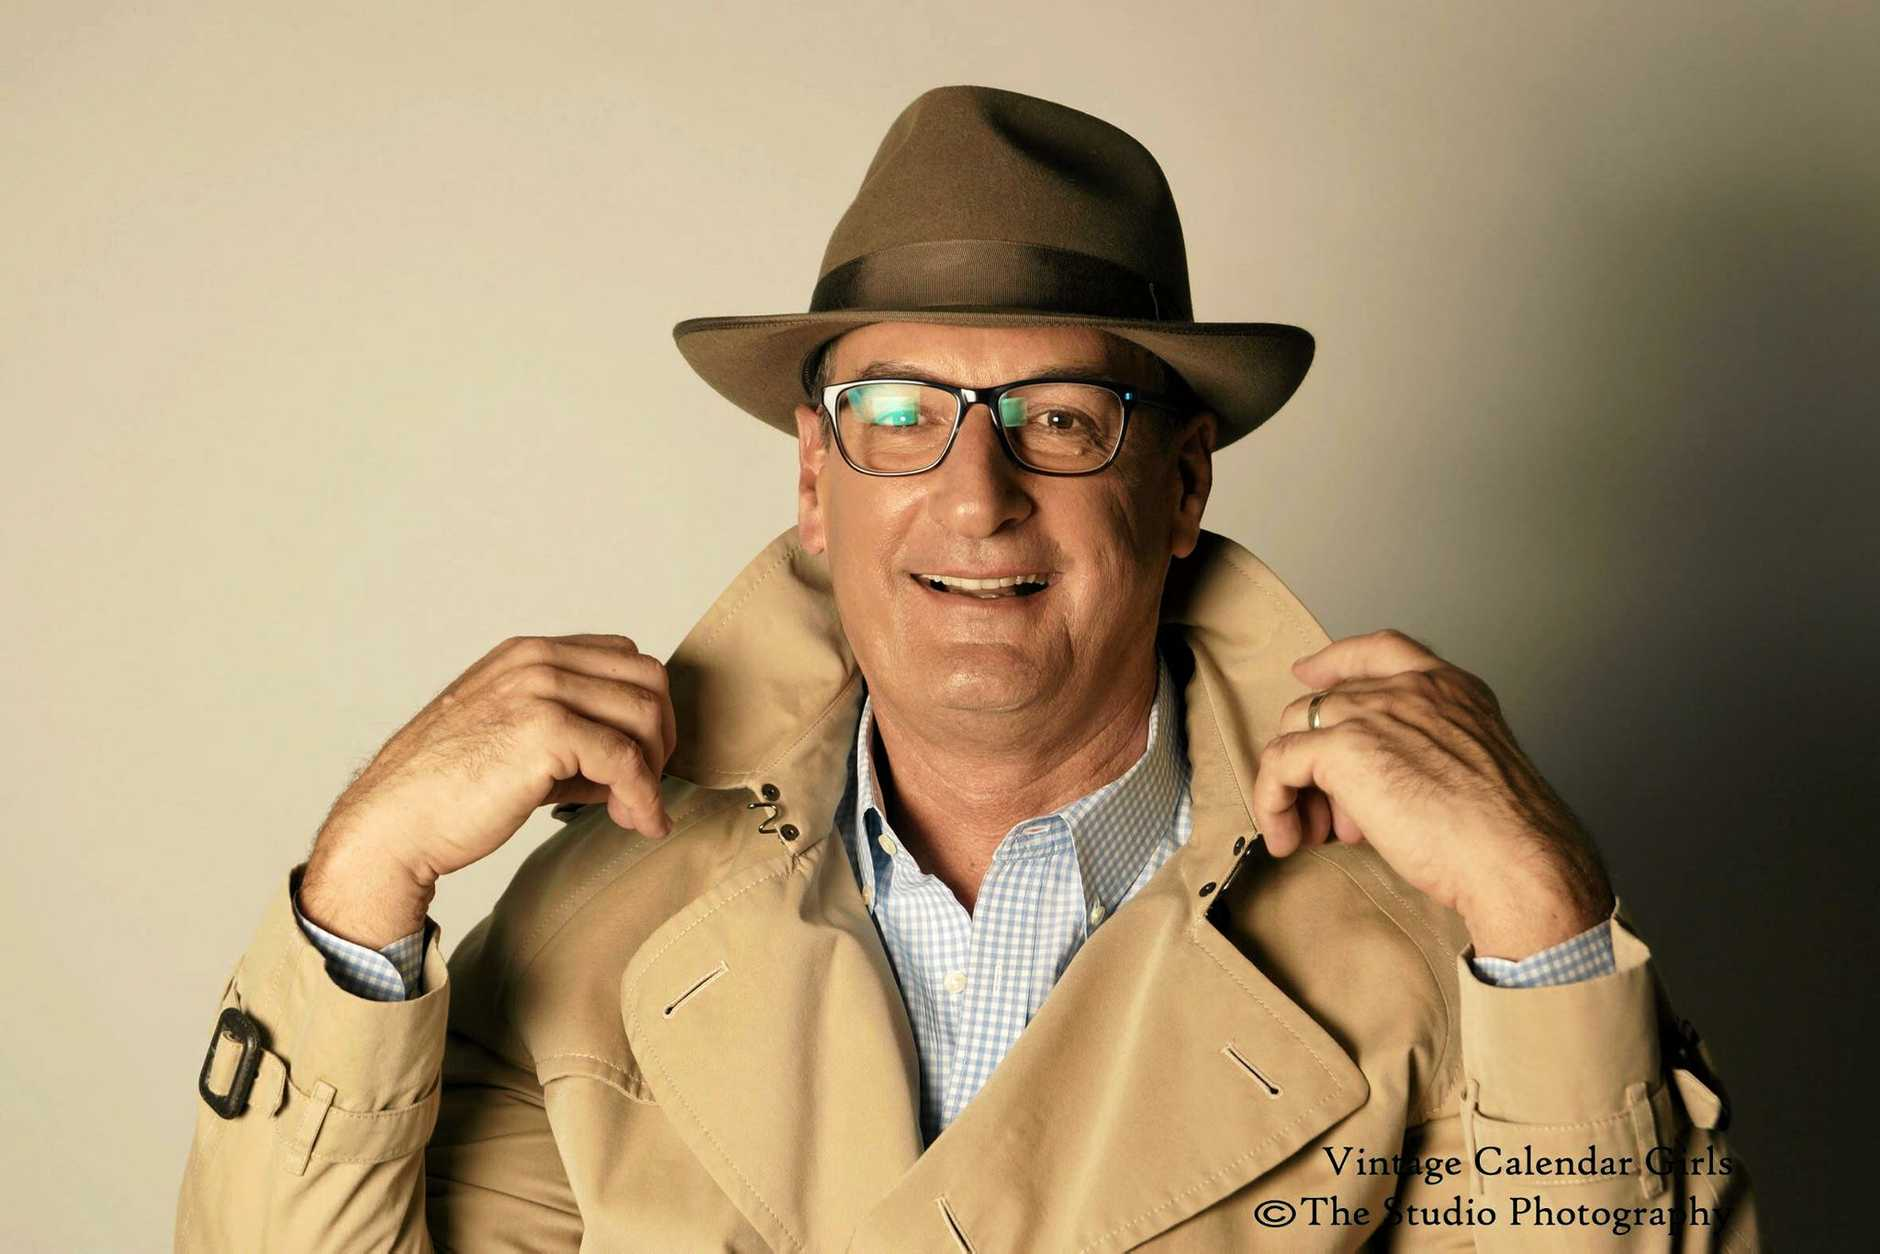 SETTING A SHINING EXAMPLE: Sunrise presenter David Koch gets all dressed up for the Vintage Calendar Girls photo shoot.